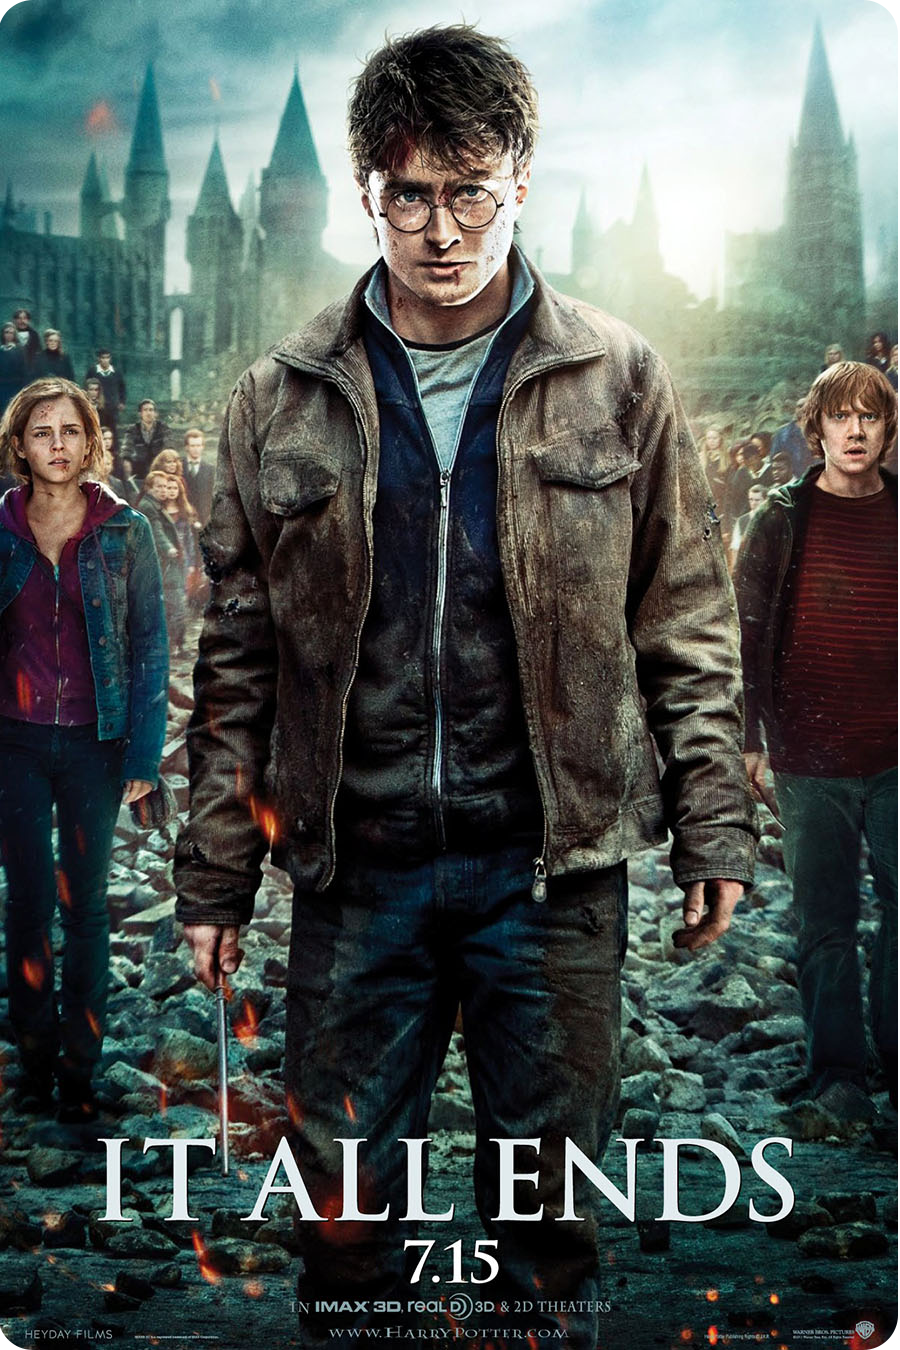 10 NEW HARRY POTTER DEATHLY IT ALL ENDS HALLOWS PART 2 - 12 X 17 7/14/11 POSTER - $14.94